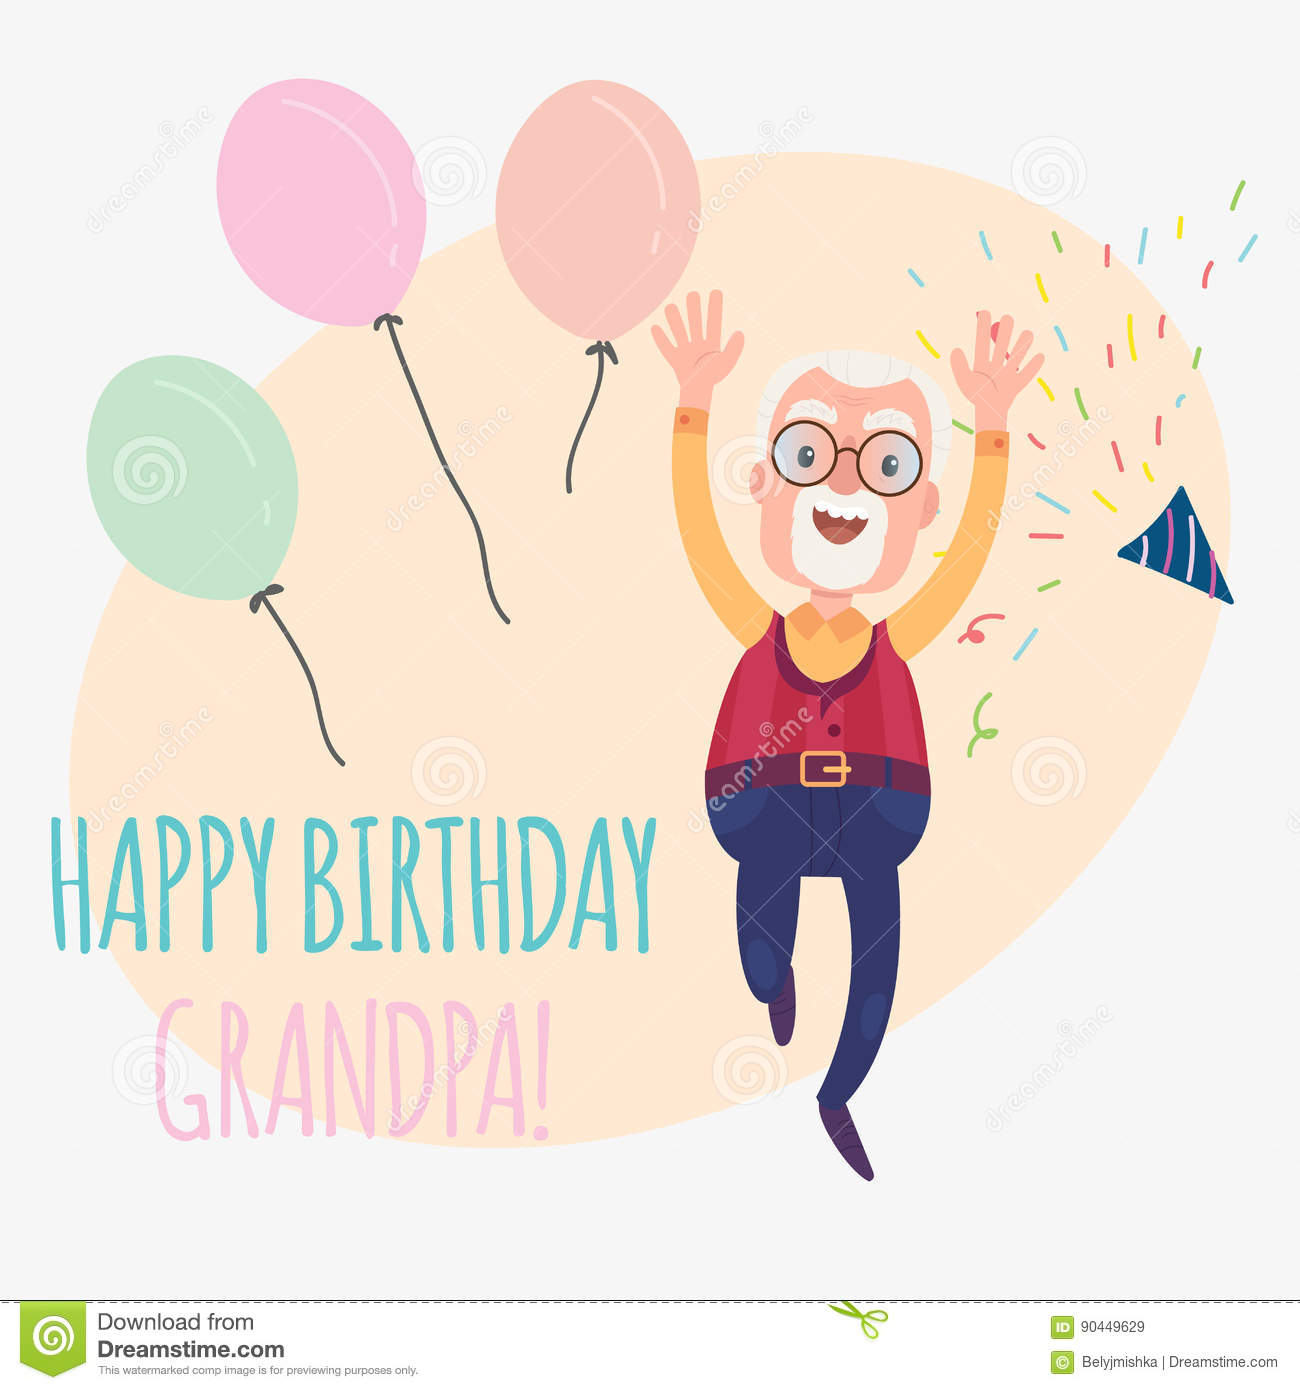 Happy Birthday Grandfather Funny Card With Confetti And Balloons Vector Illustration